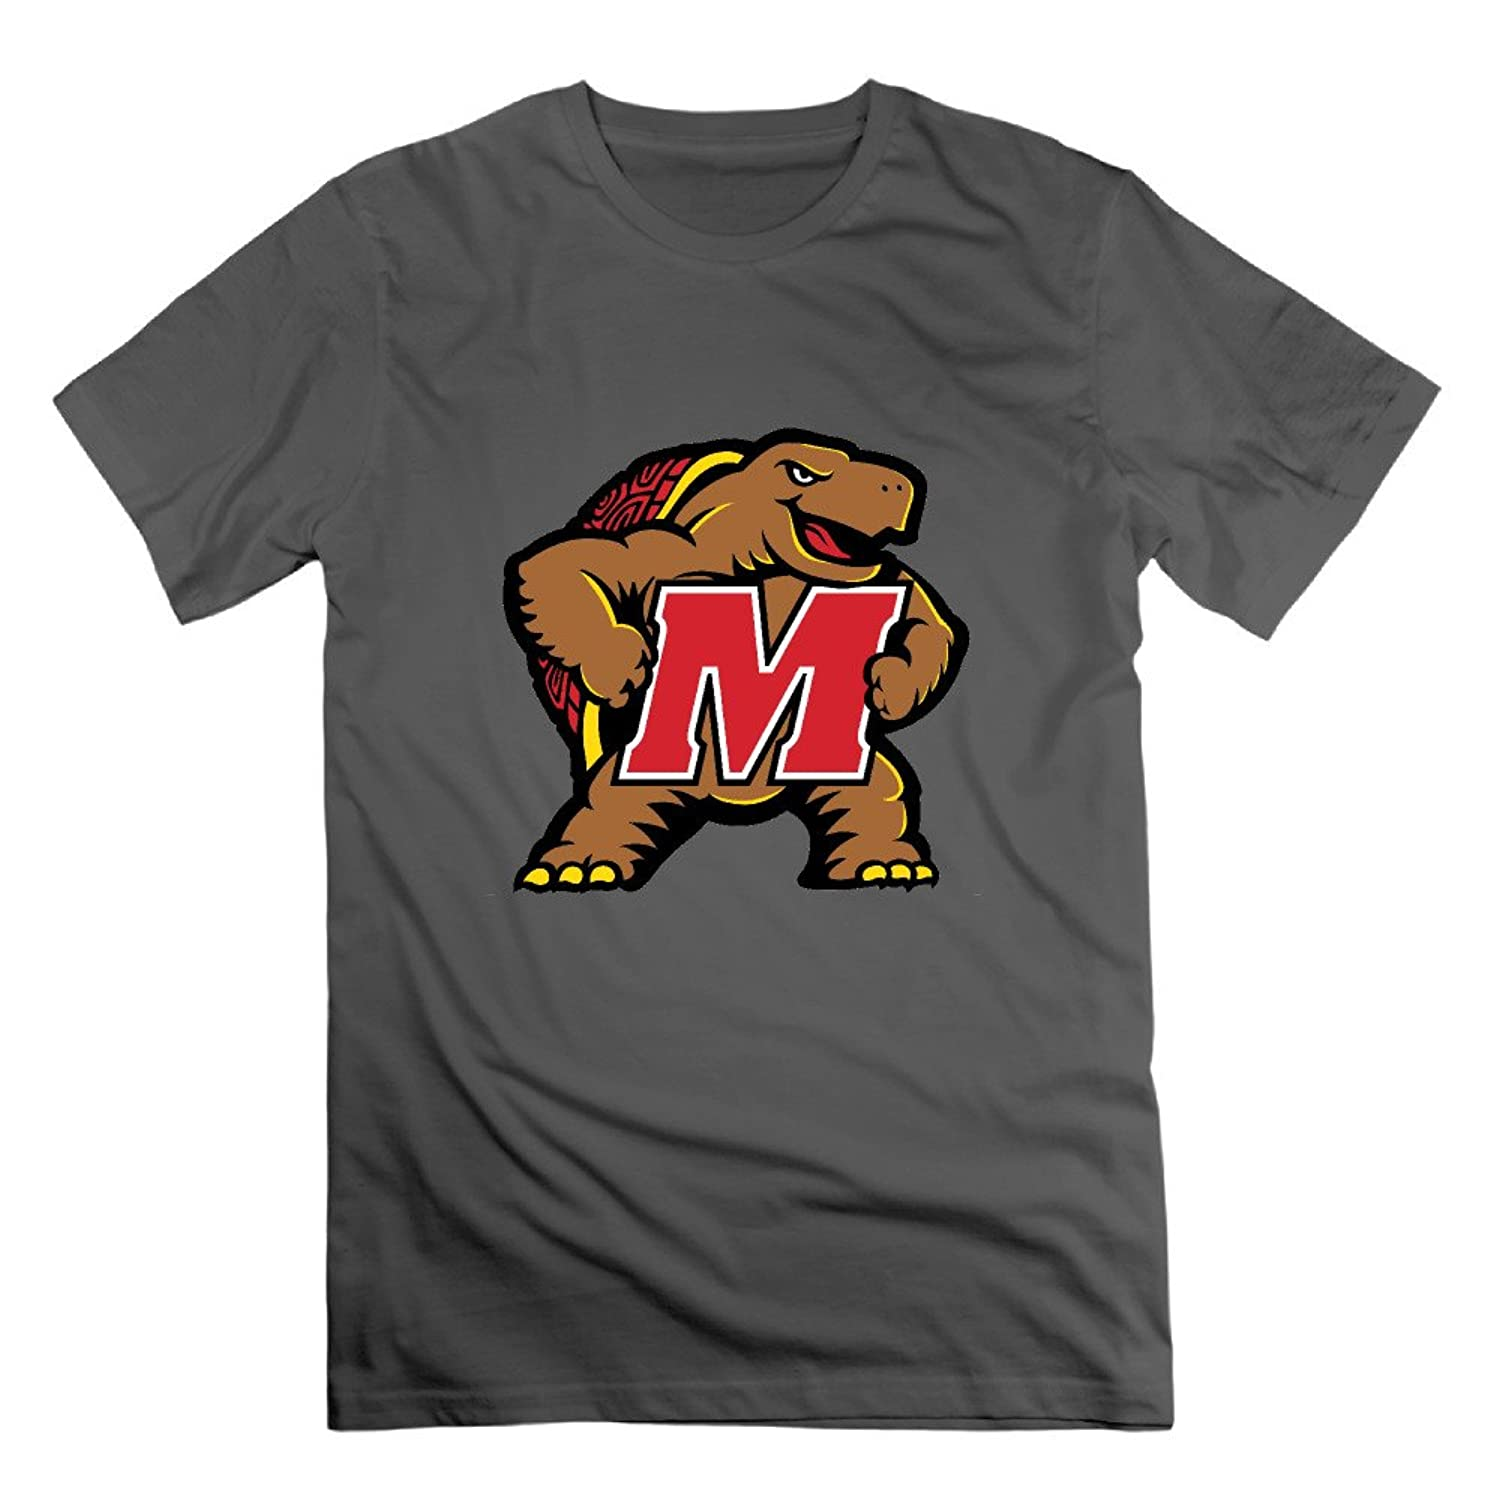 Normal Fit T Shirt University Of Maryland Logo O Neck Crew Neck